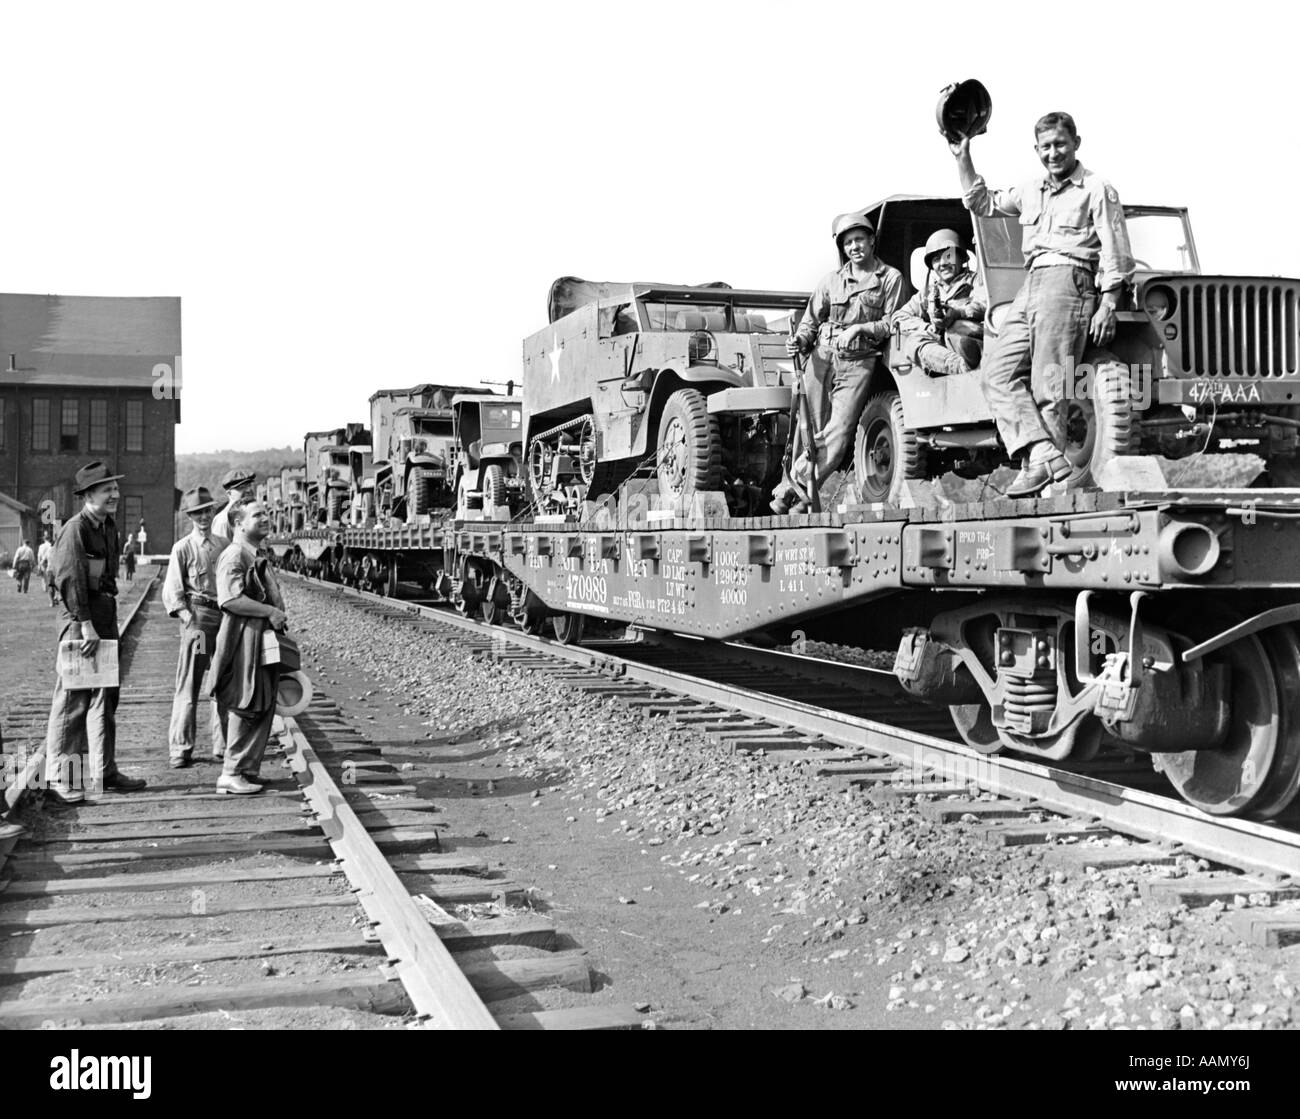 1940s WORLD WAR II FREIGHT TRAIN OF JEEPS AND HALF TRACKS ON WAY TO THE FRONT FACTORY WORKERS BID FAREWELL TO SOLDIERS - Stock Image